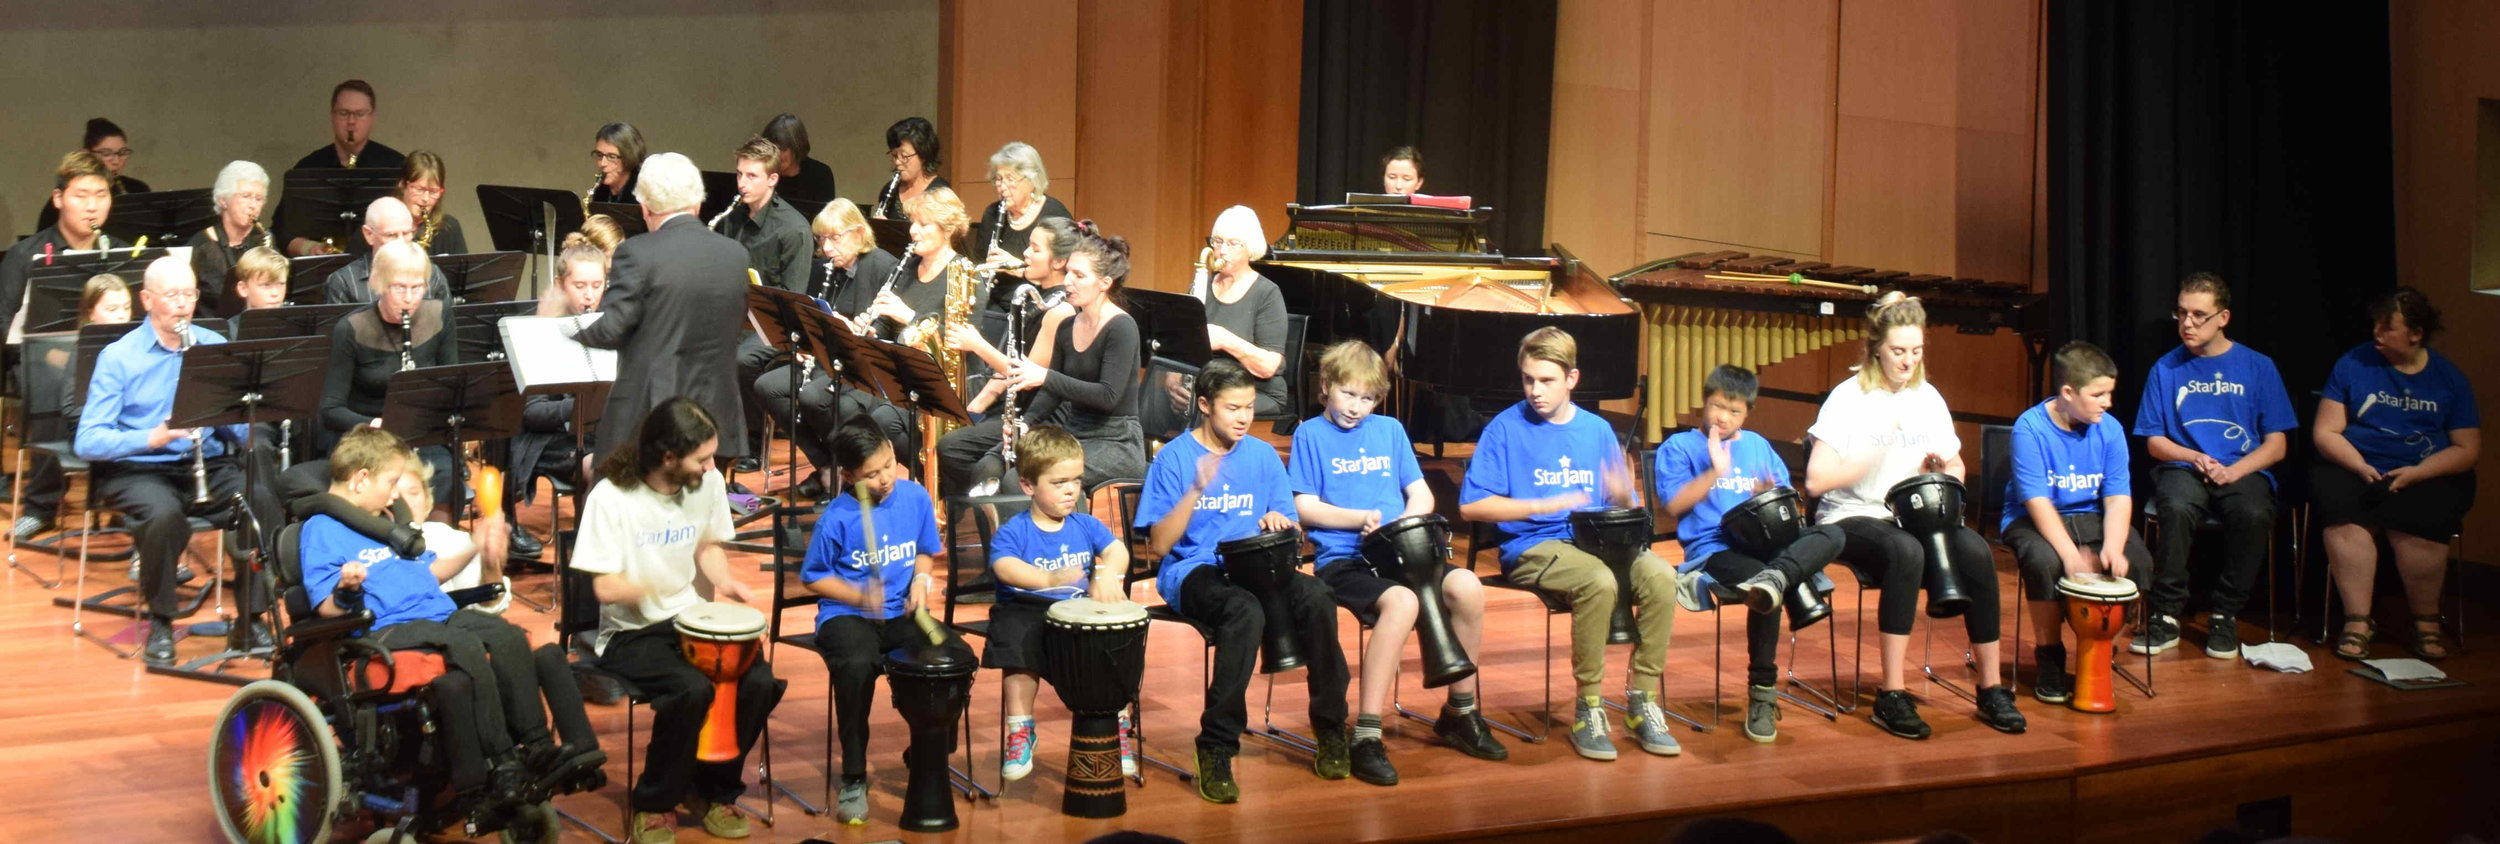 Full orchestra and the Dynamic Drumming by StarJam kids